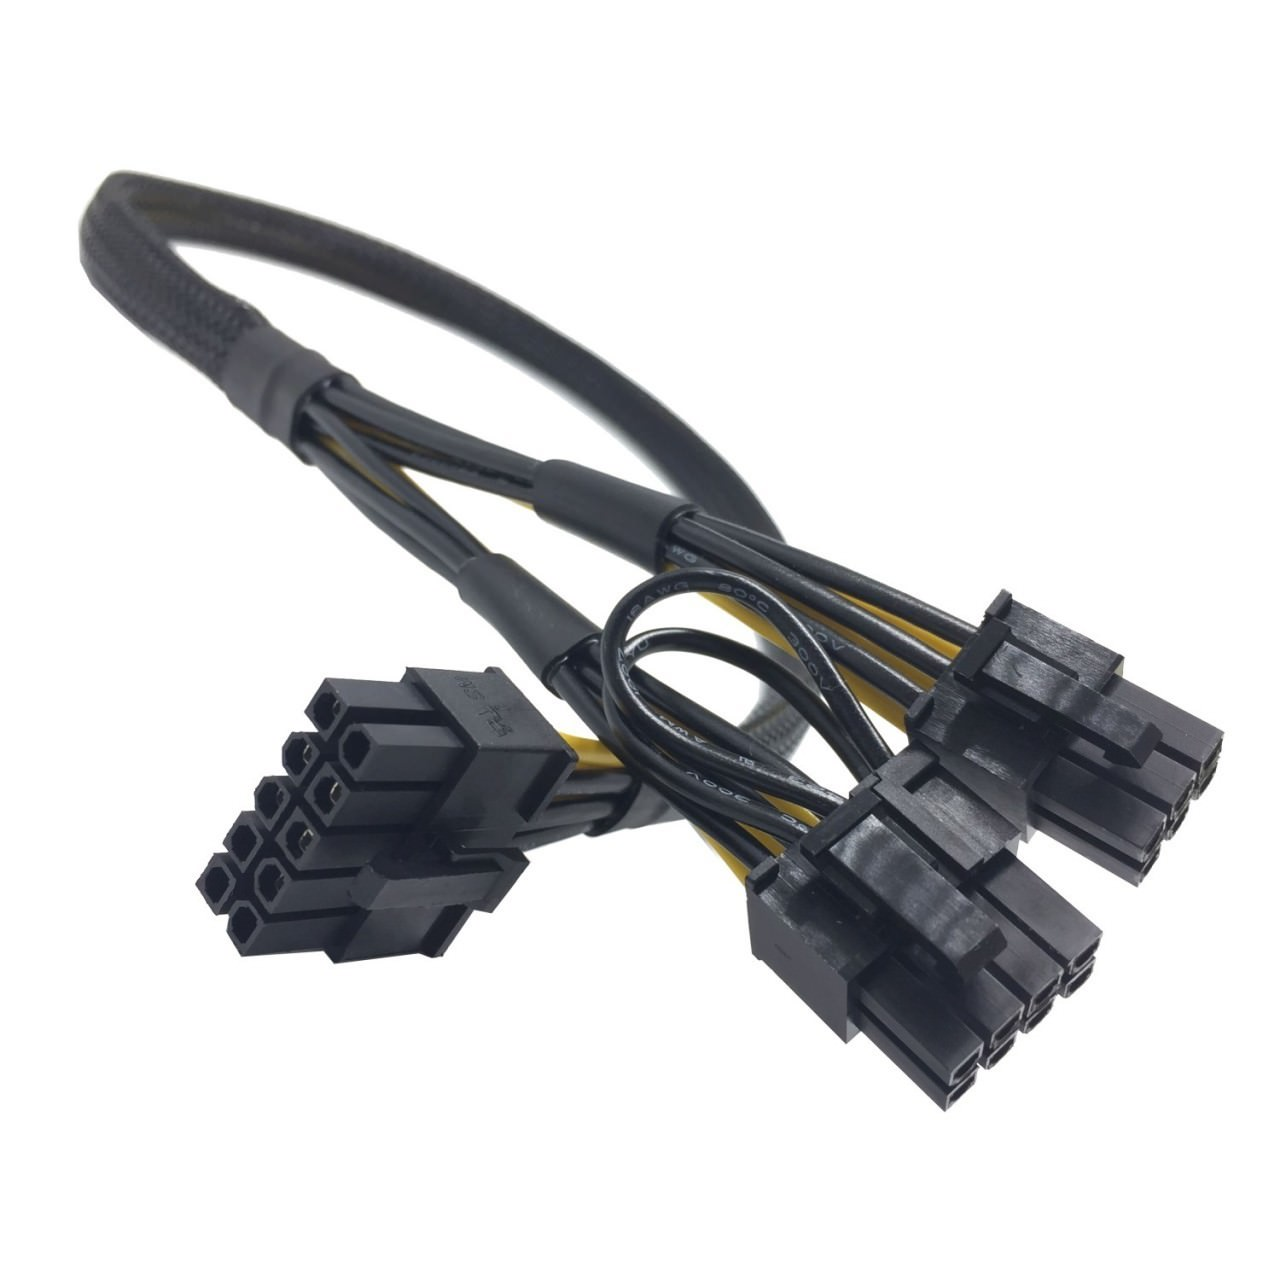 HP ProLiant DL580 Gen8 10 Pin to 8 Pin and 6 Pin GPU PCIE Power Cable